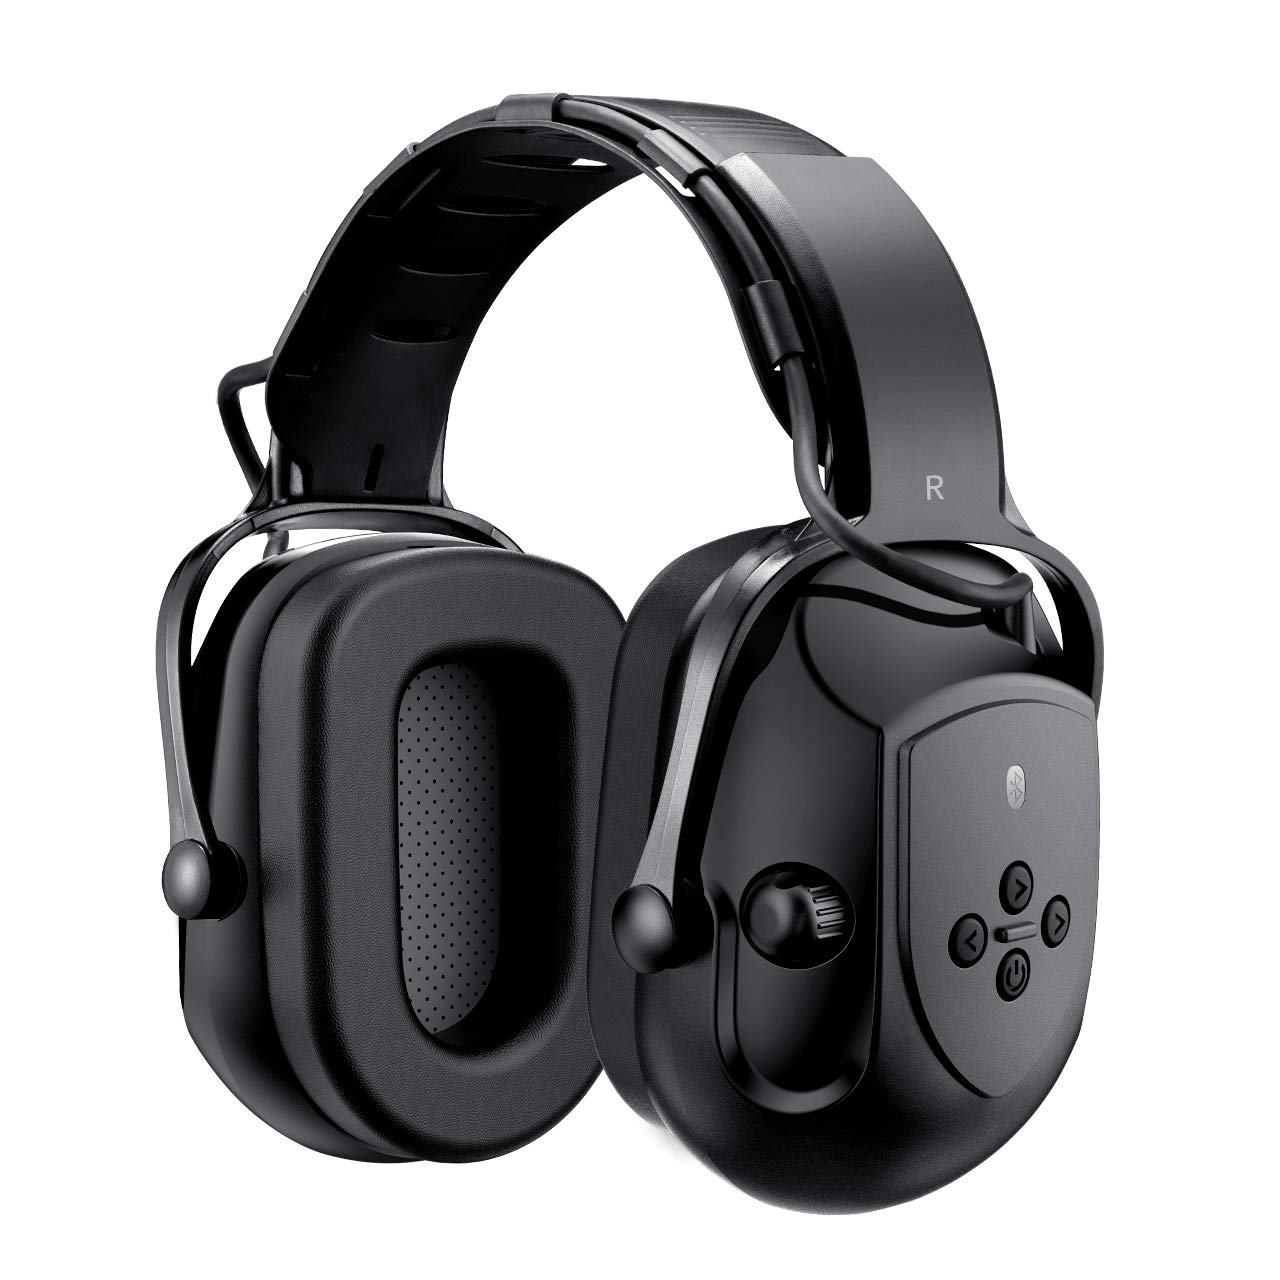 Mpow HP102A Bluetooth Noise Reduction Safety Ear Muffs, NRR 29dB/SNR 36dB Adjustable Ear Hearing Protection Headphones with 3.5mm AUX, Built-in Mic, Rechargeable Battery and Volume Control